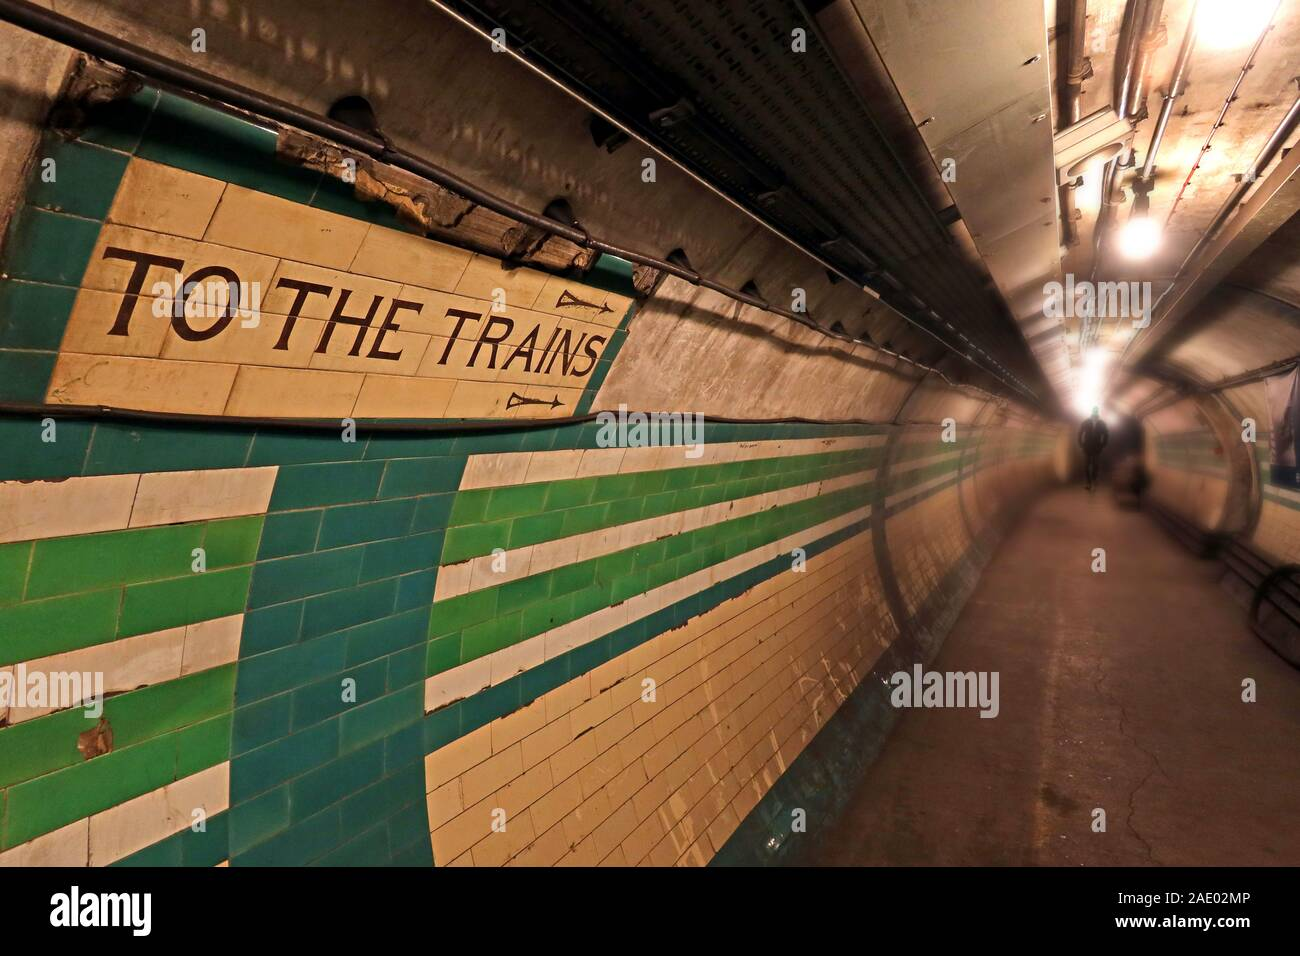 @Hotpixuk,HotpixUK,GoTonySmith,UK,England,London,South East England,sign,arrow,green tiles,tiling,green,Tunnel,down in the,To The,train,public transport,Trains,signs,arrows,tiles,Underground,Tube Station at,night,midnight,South East,dirty,dingy,danger,dangerous,fear,cold,infinity,Subterranean London,Subterranean,walkway,metropolis,passageway,railway,below ground